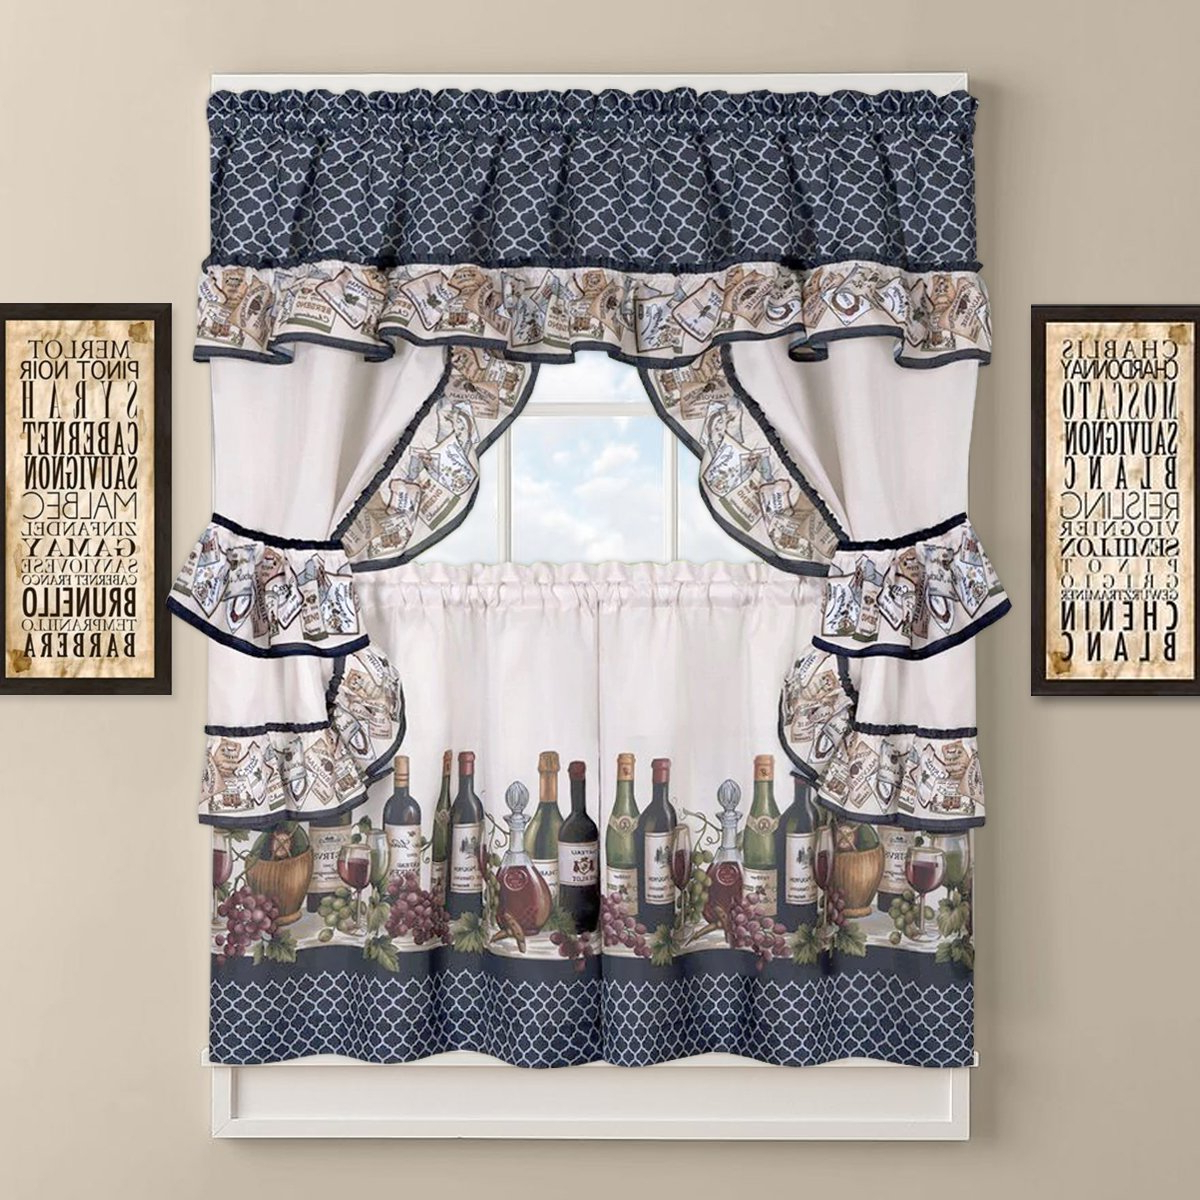 "Top Of The Morning Printed Tailored Cottage Curtain Tier Sets Pertaining To Favorite Sweet Home Collection 4 Piece Kitchen Curtain Set With With Tier Pair, Tiebacks, And Valance, 36"", Morning Rooster (View 15 of 20)"